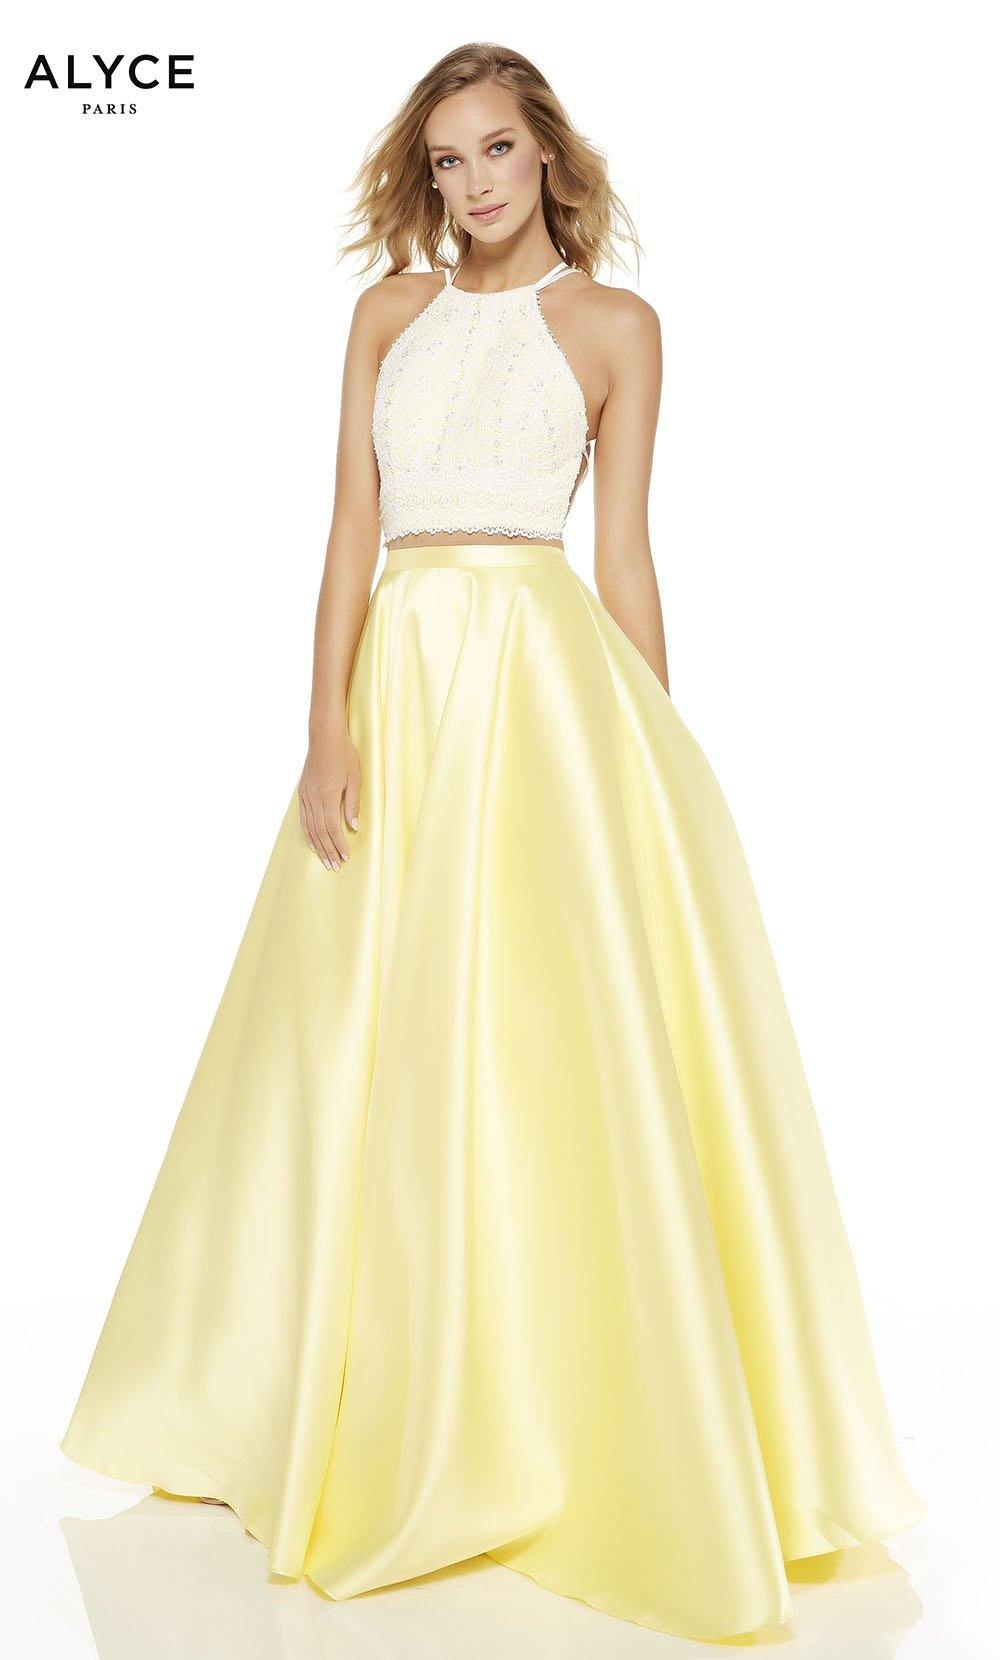 Diamond White-Lemon Drop two piece prom dress with a halter neckline